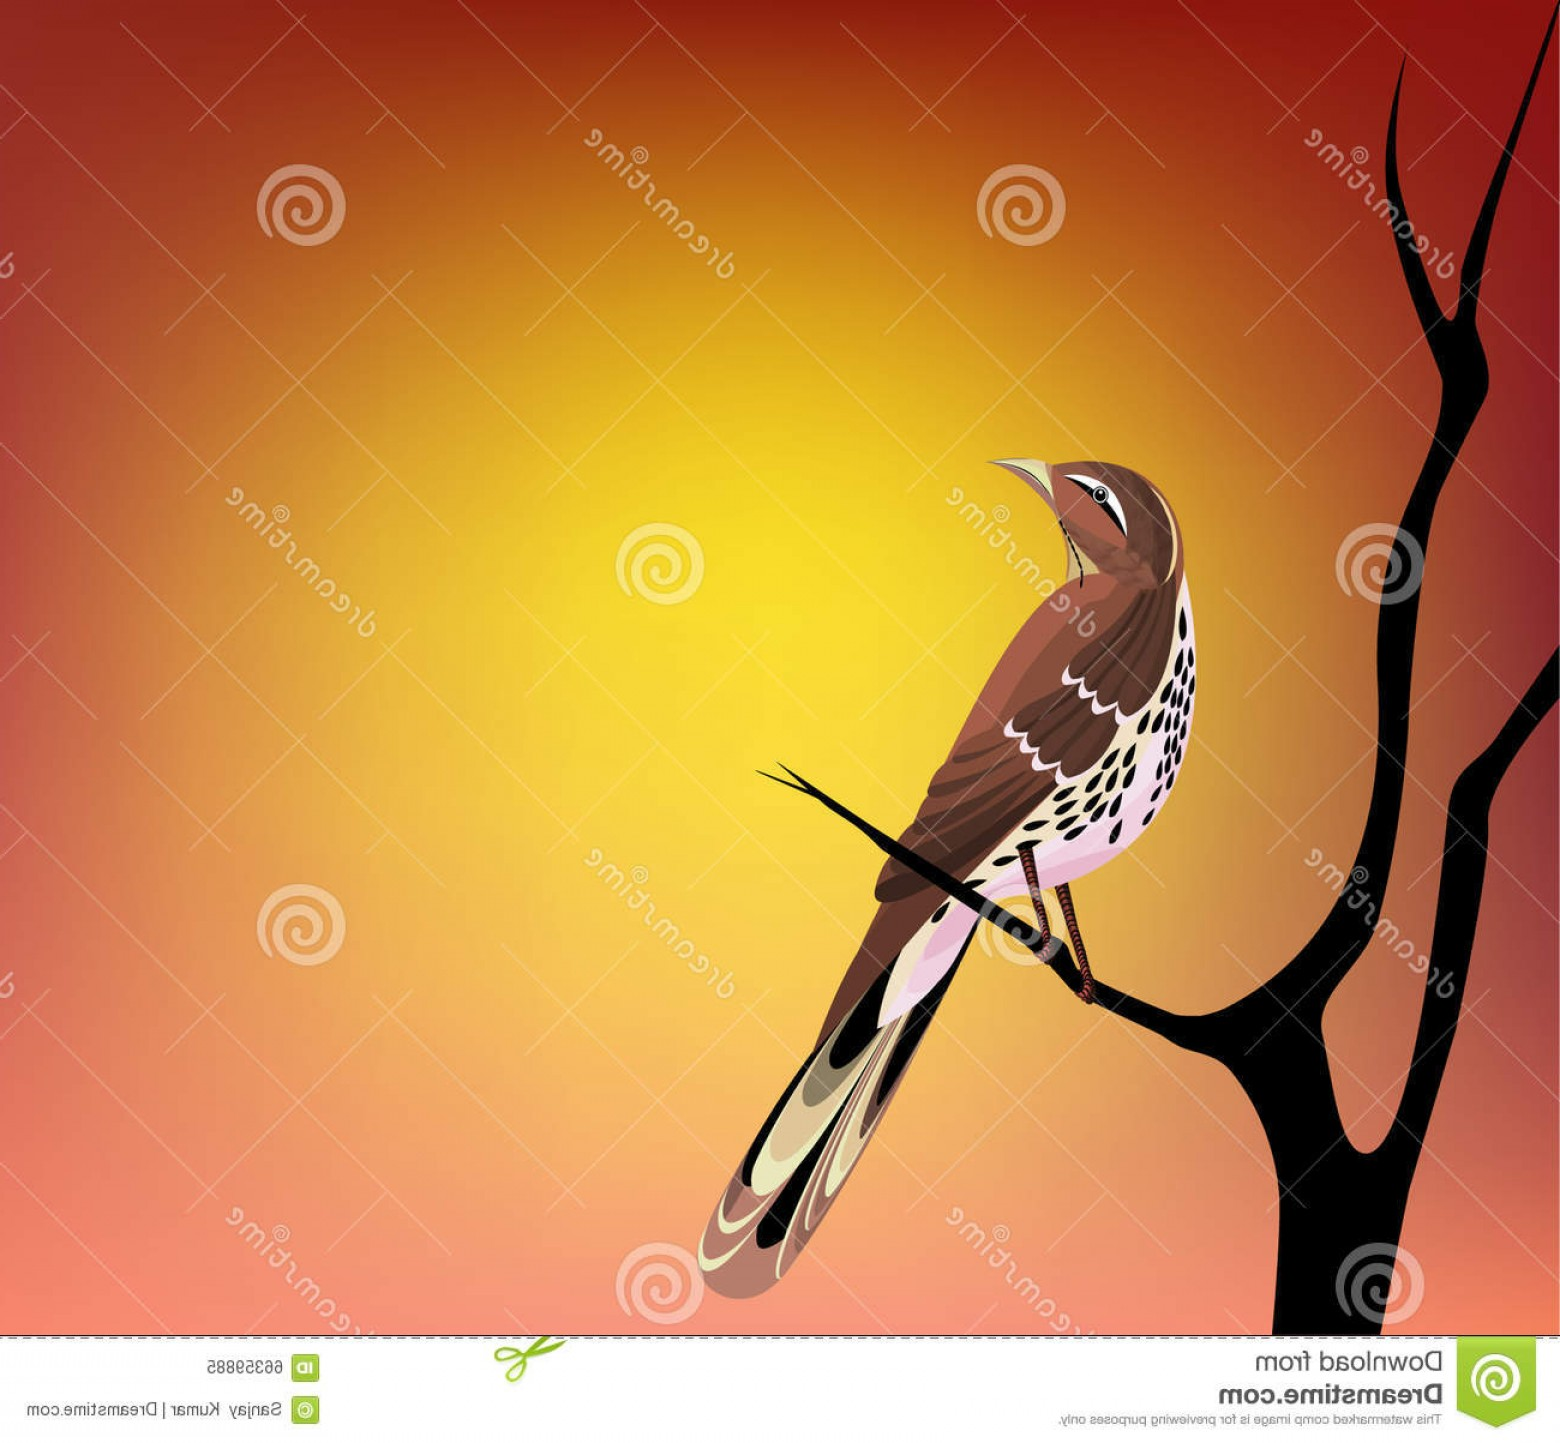 Thrasher Vector: Stock Illustration Thrasher Seeing Morning Sun All Elements Separate Layers Colour Can Be Changed Easily Image